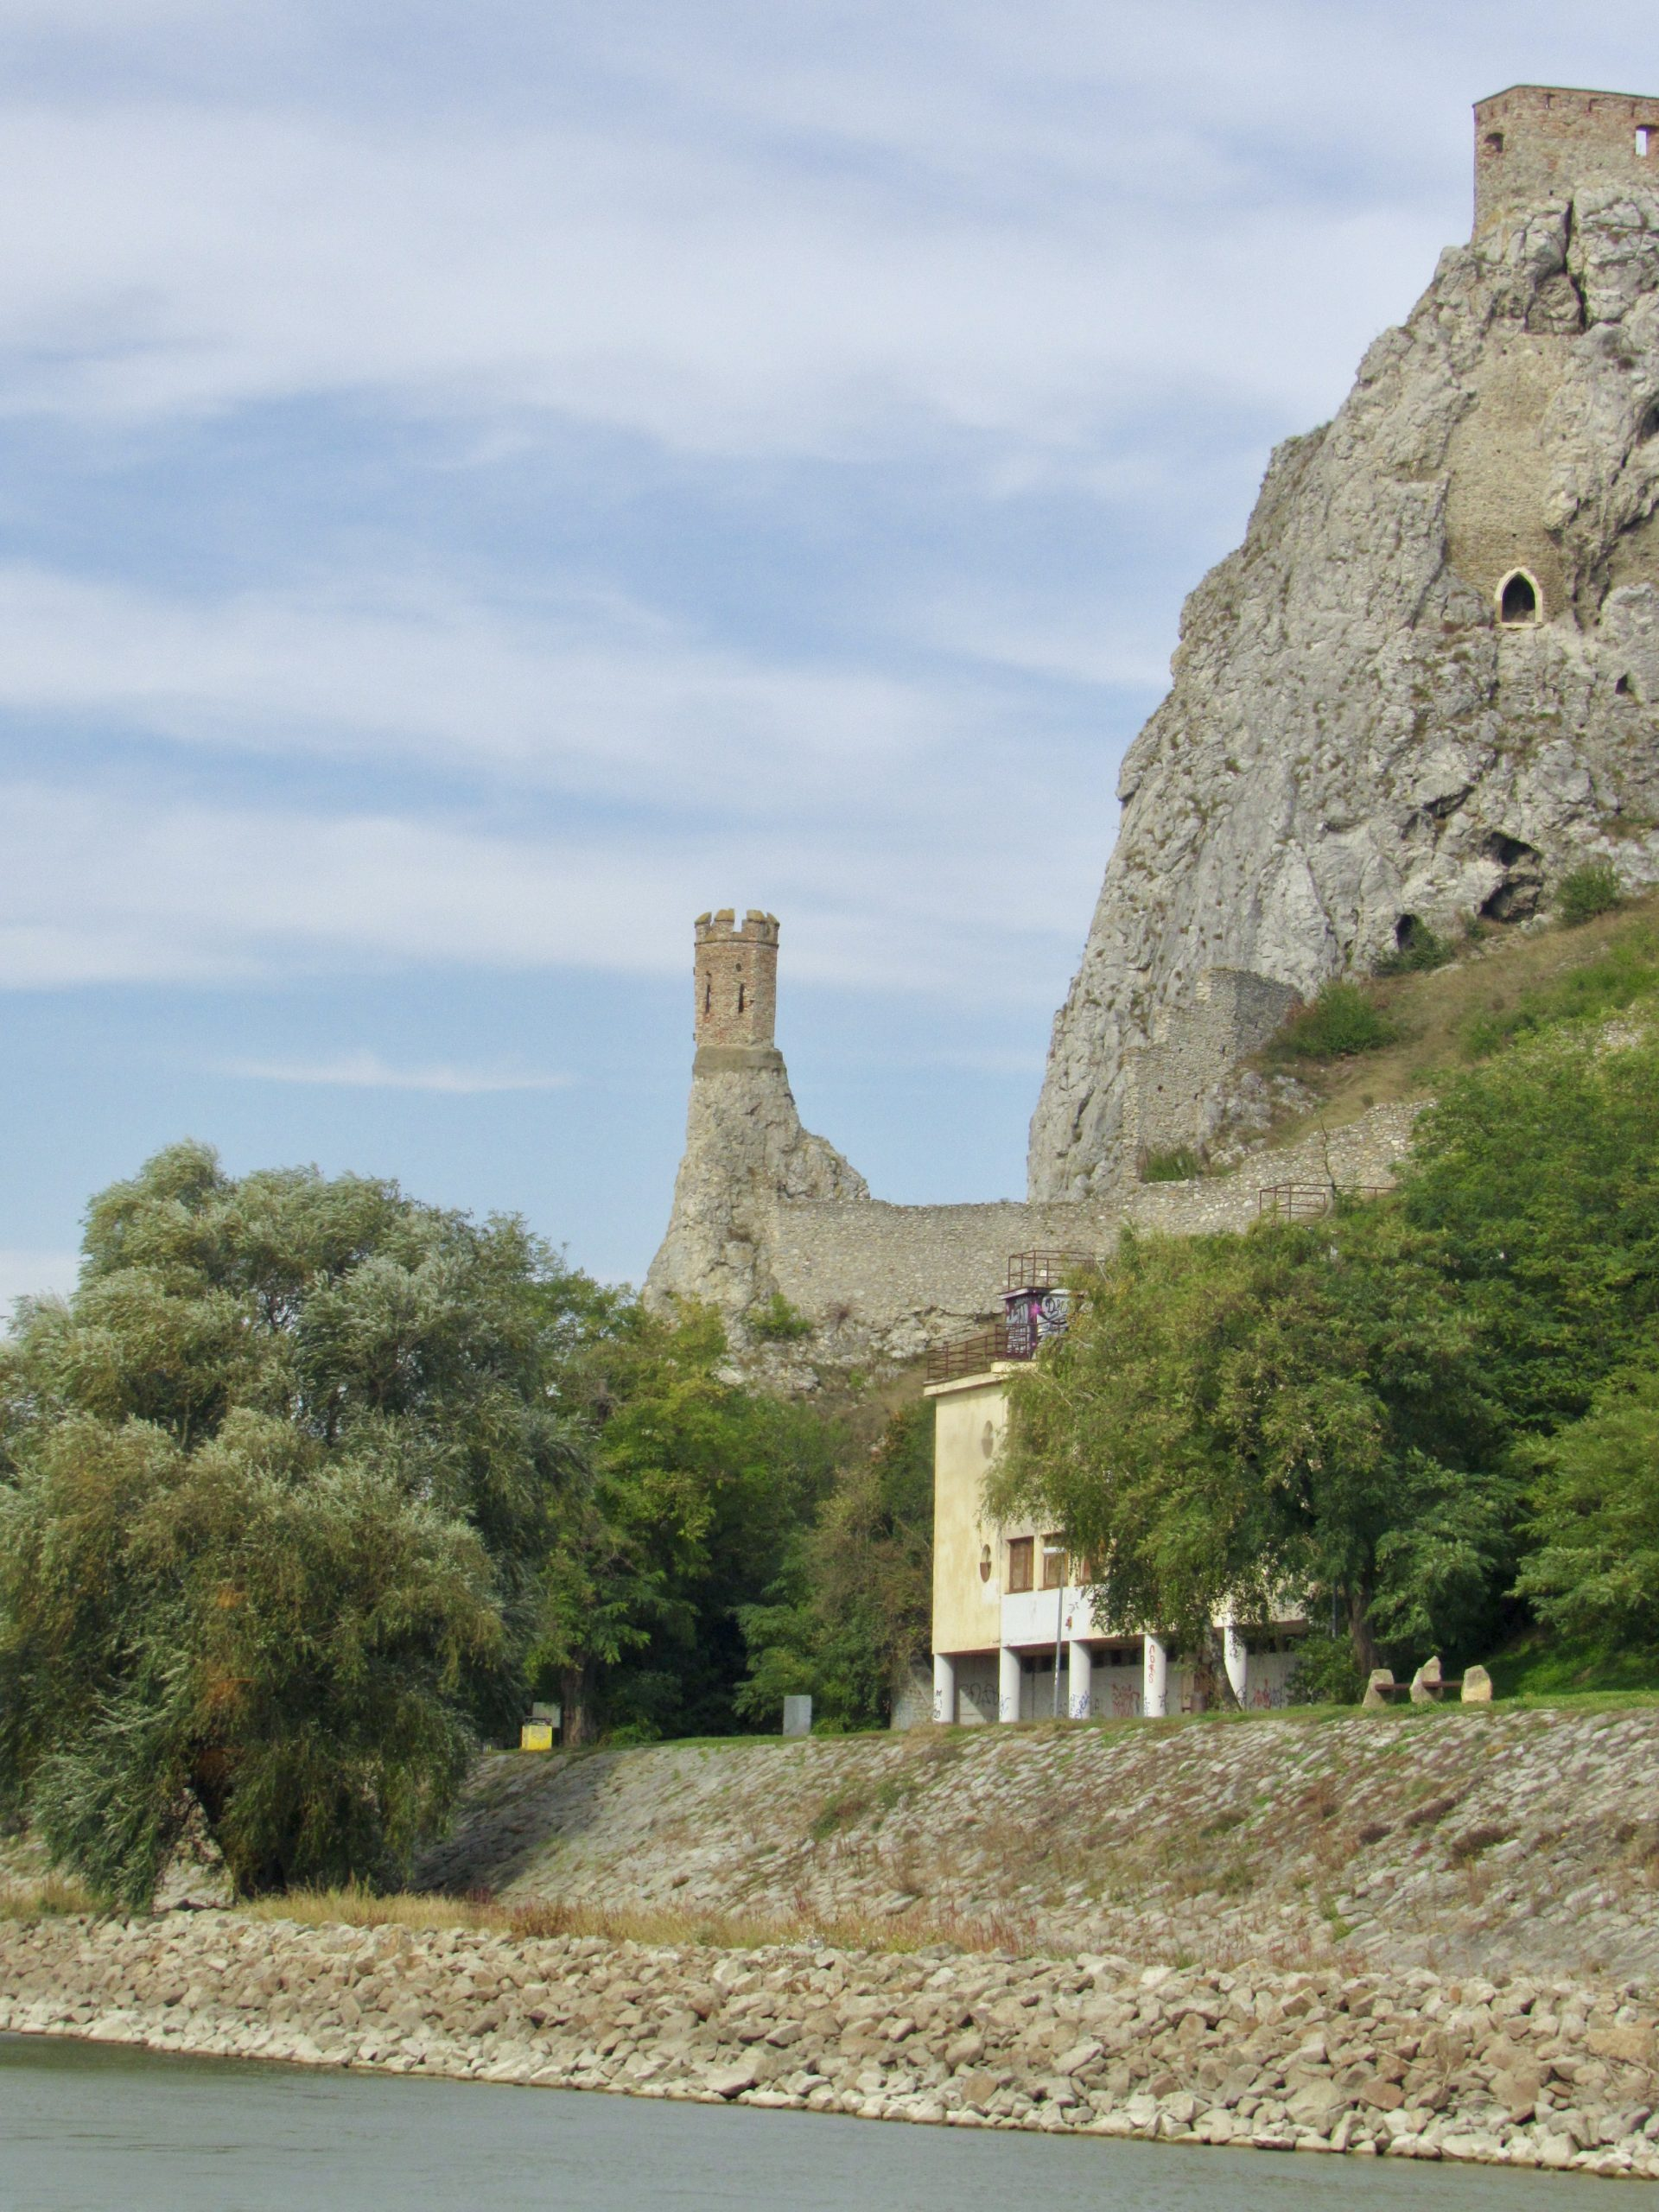 devin castle on the Danube